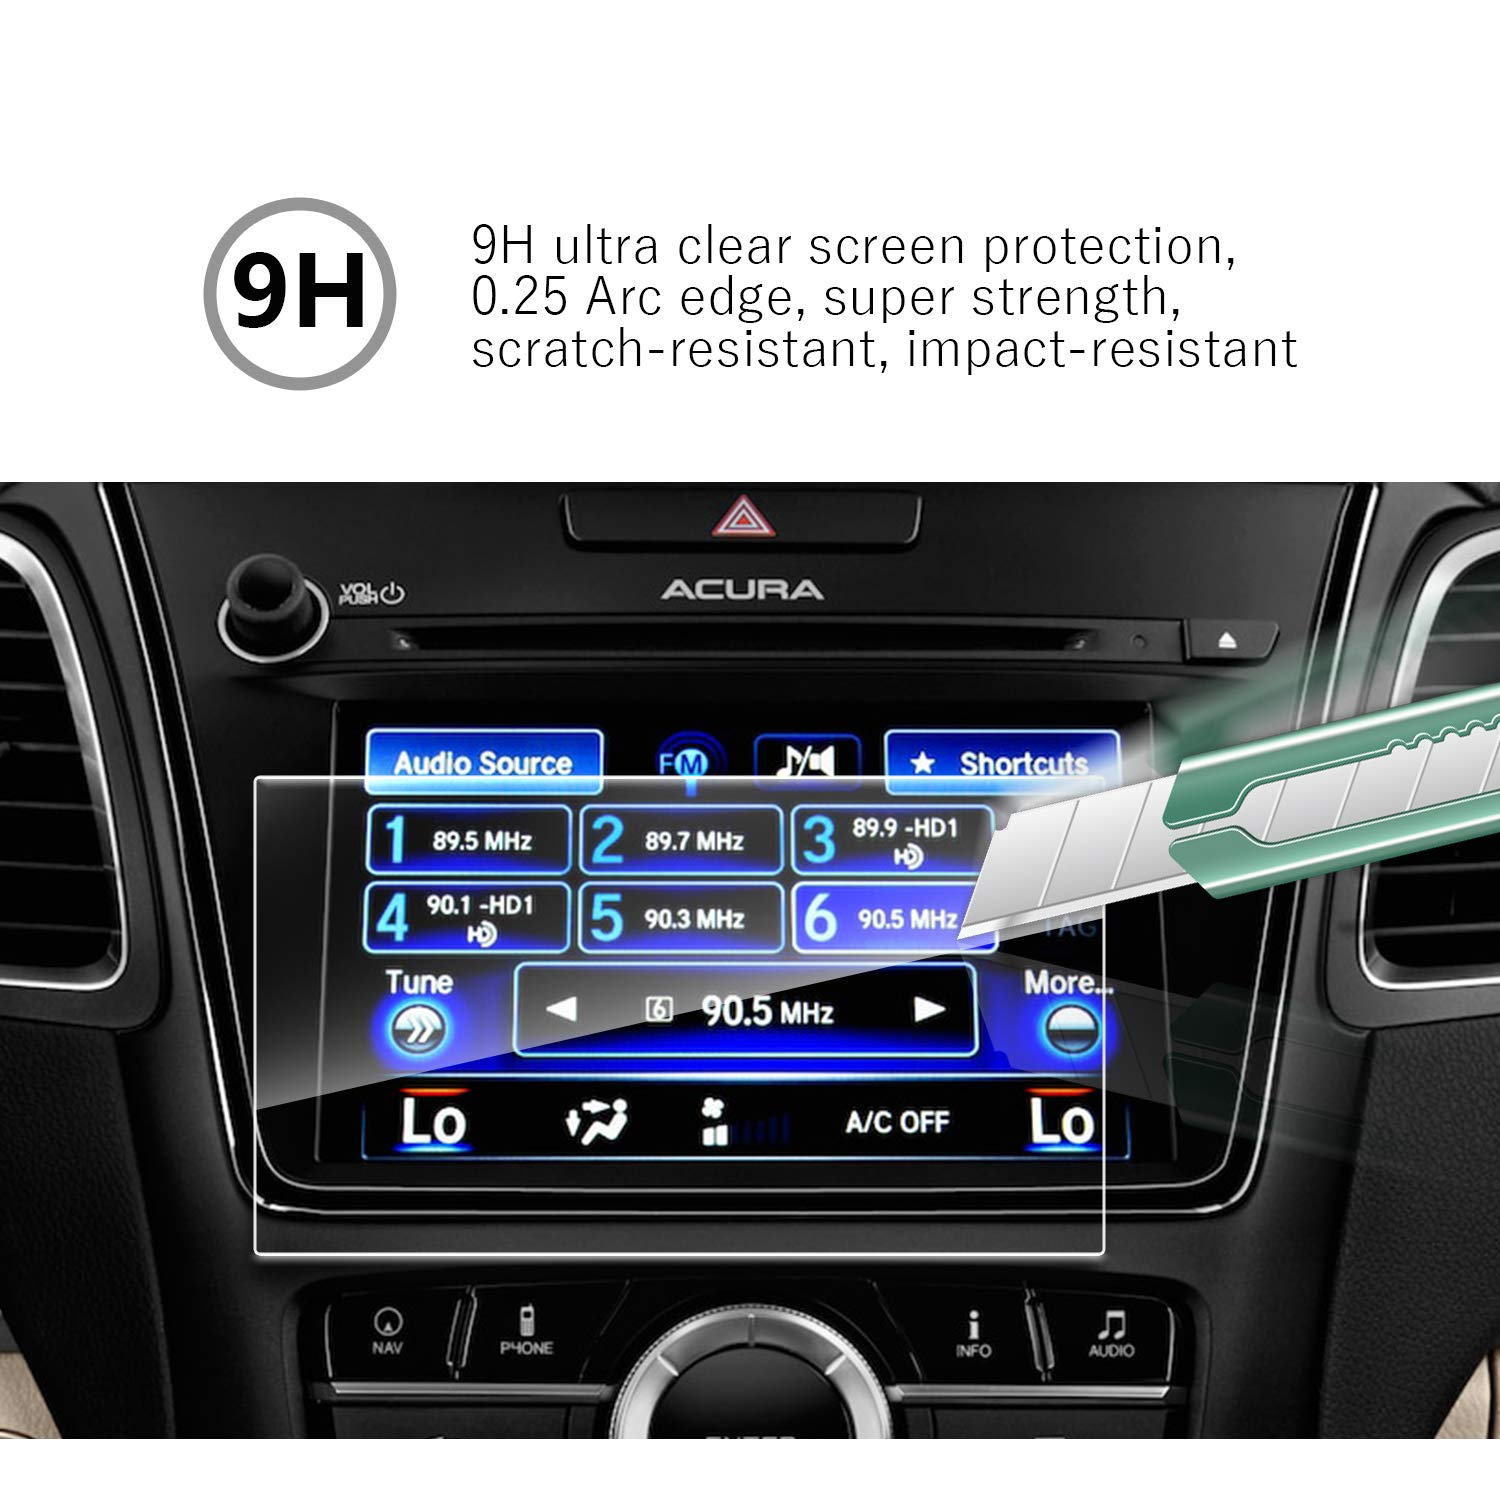 YEE PIN 2016 2017 2018 Acura RDX 29 ODMD Display 7Inch Tempered Glass Touch Sensitivity Anti-Fouling Anti-Explosion Navigation Protector